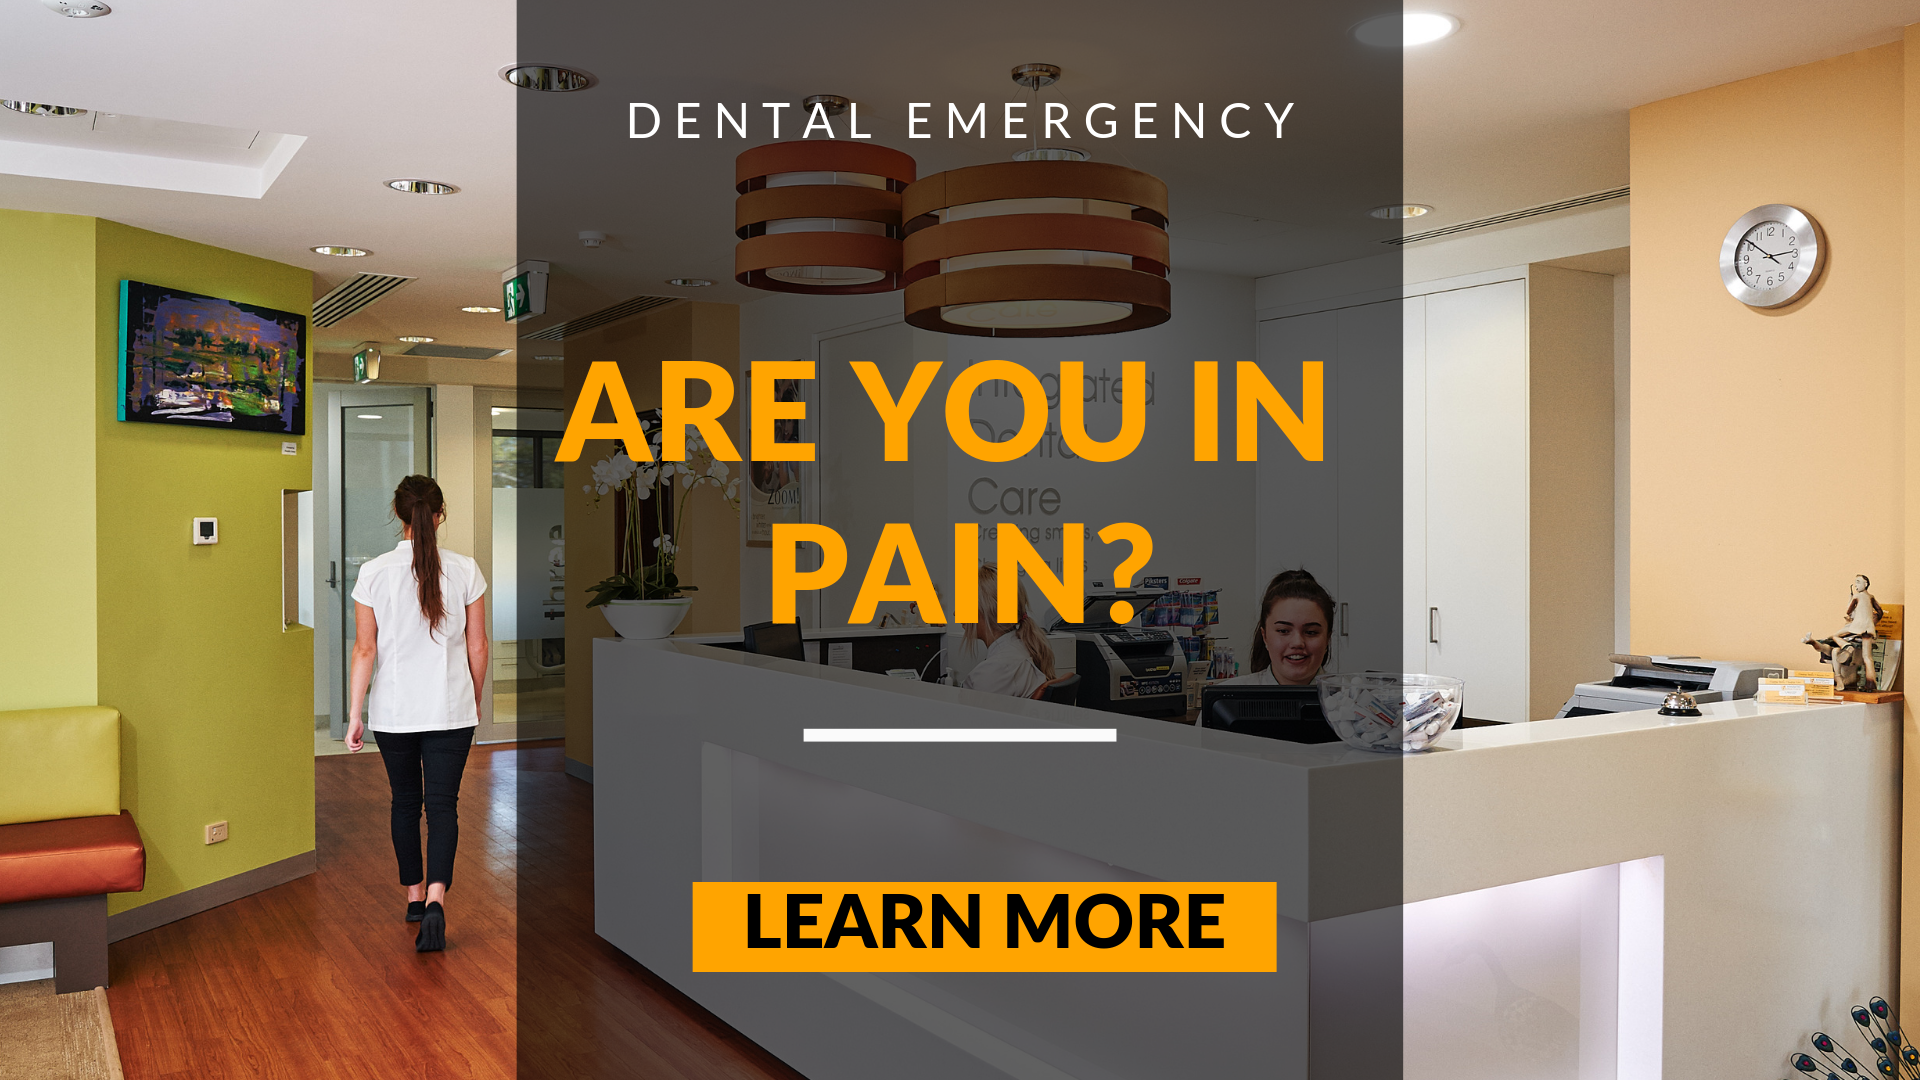 dental emergency in pain